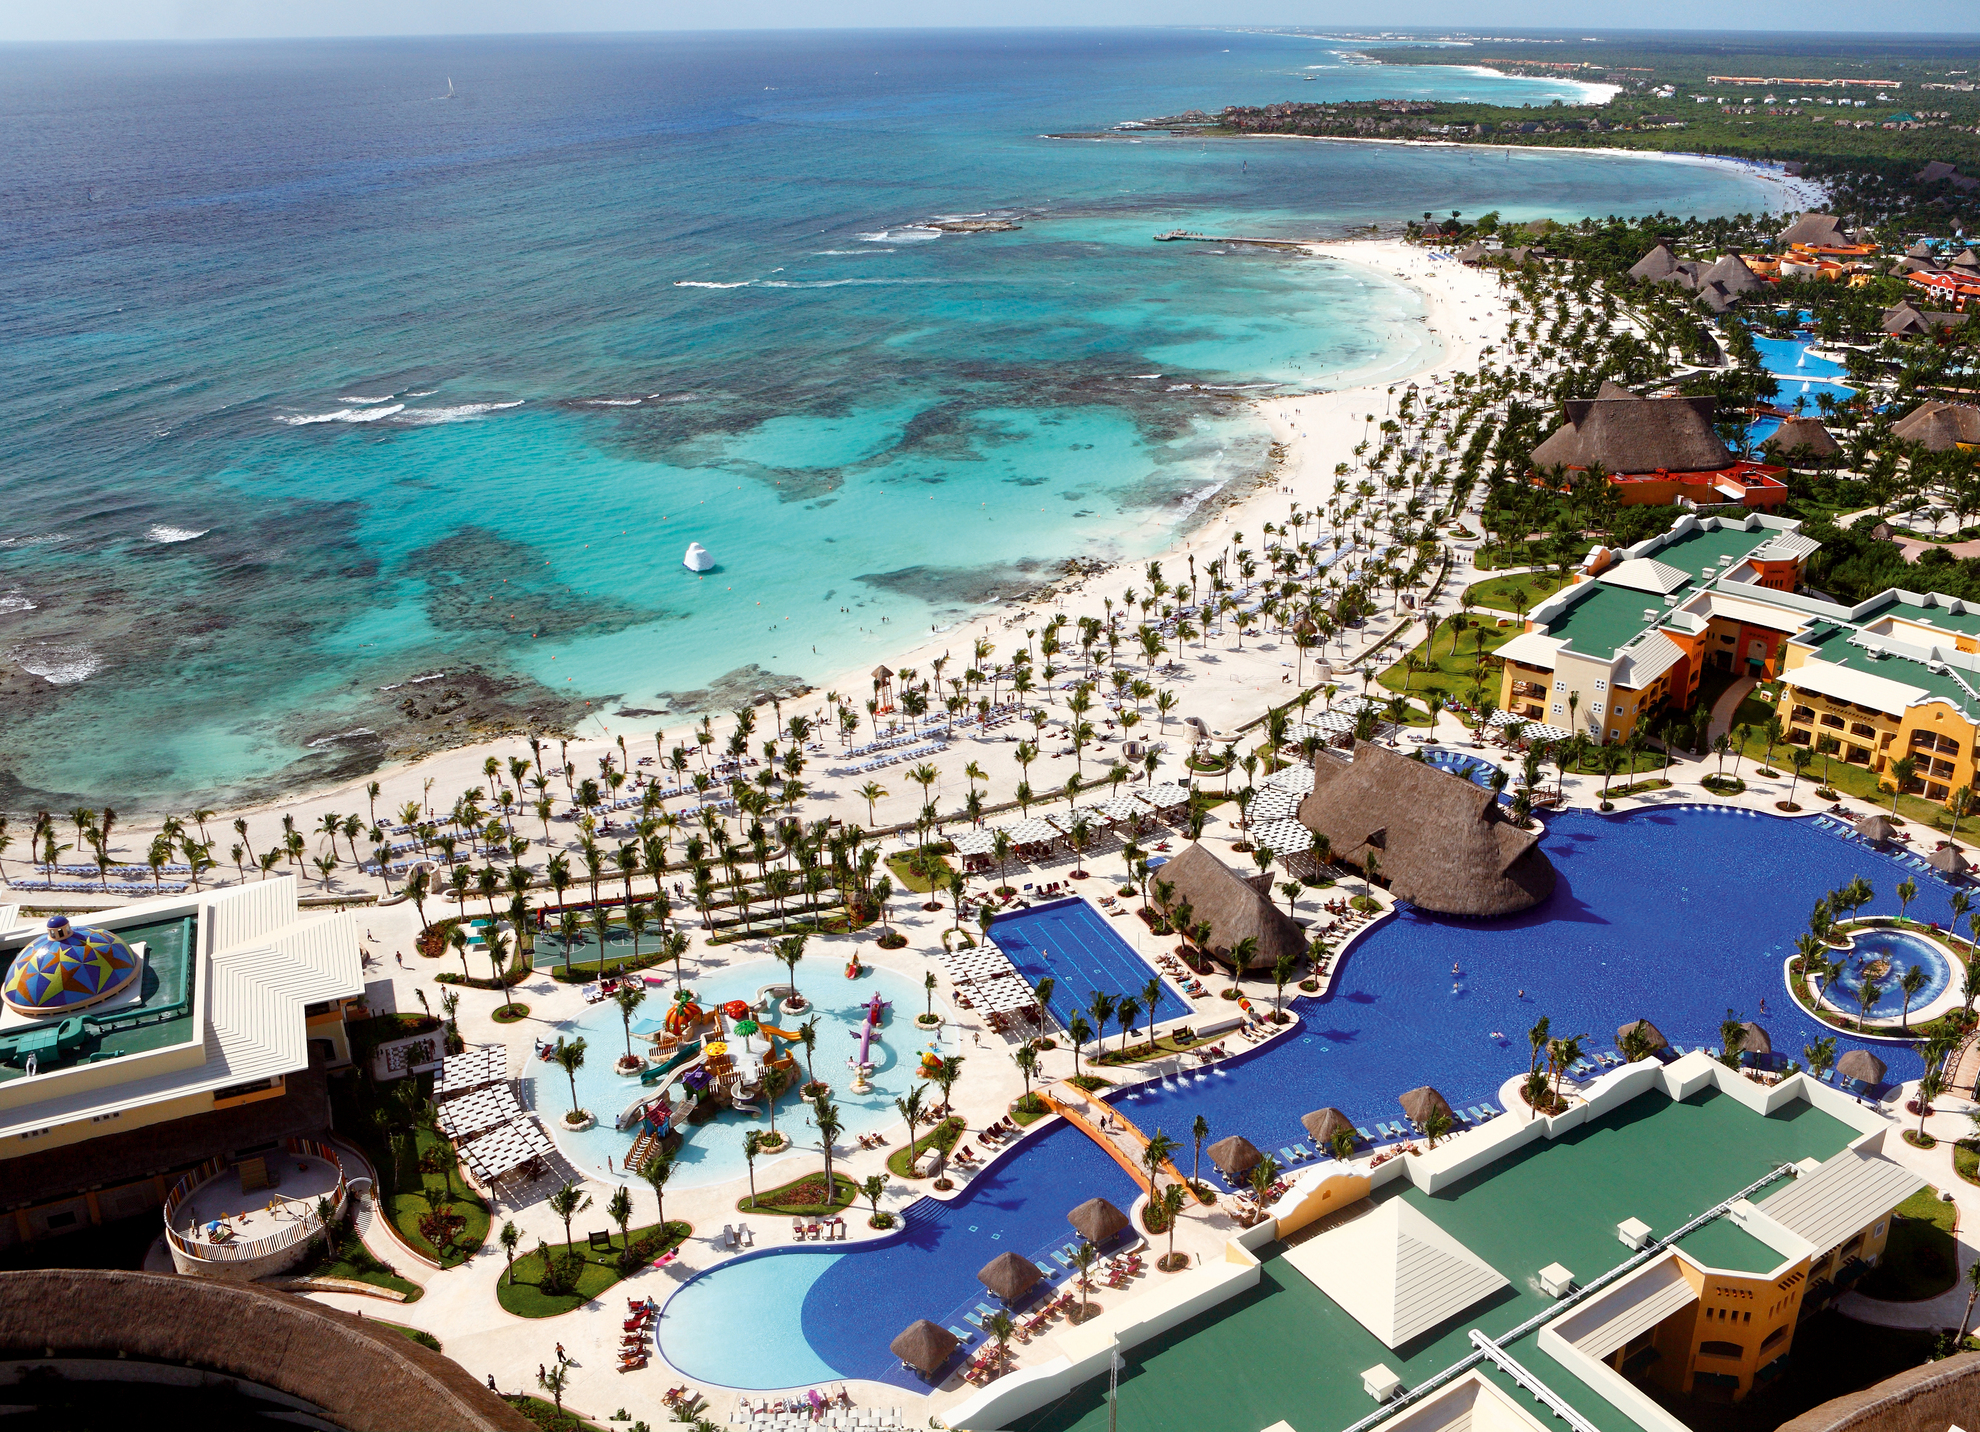 barcelo maya palace - all inclusive resort, riviera maya - cancun